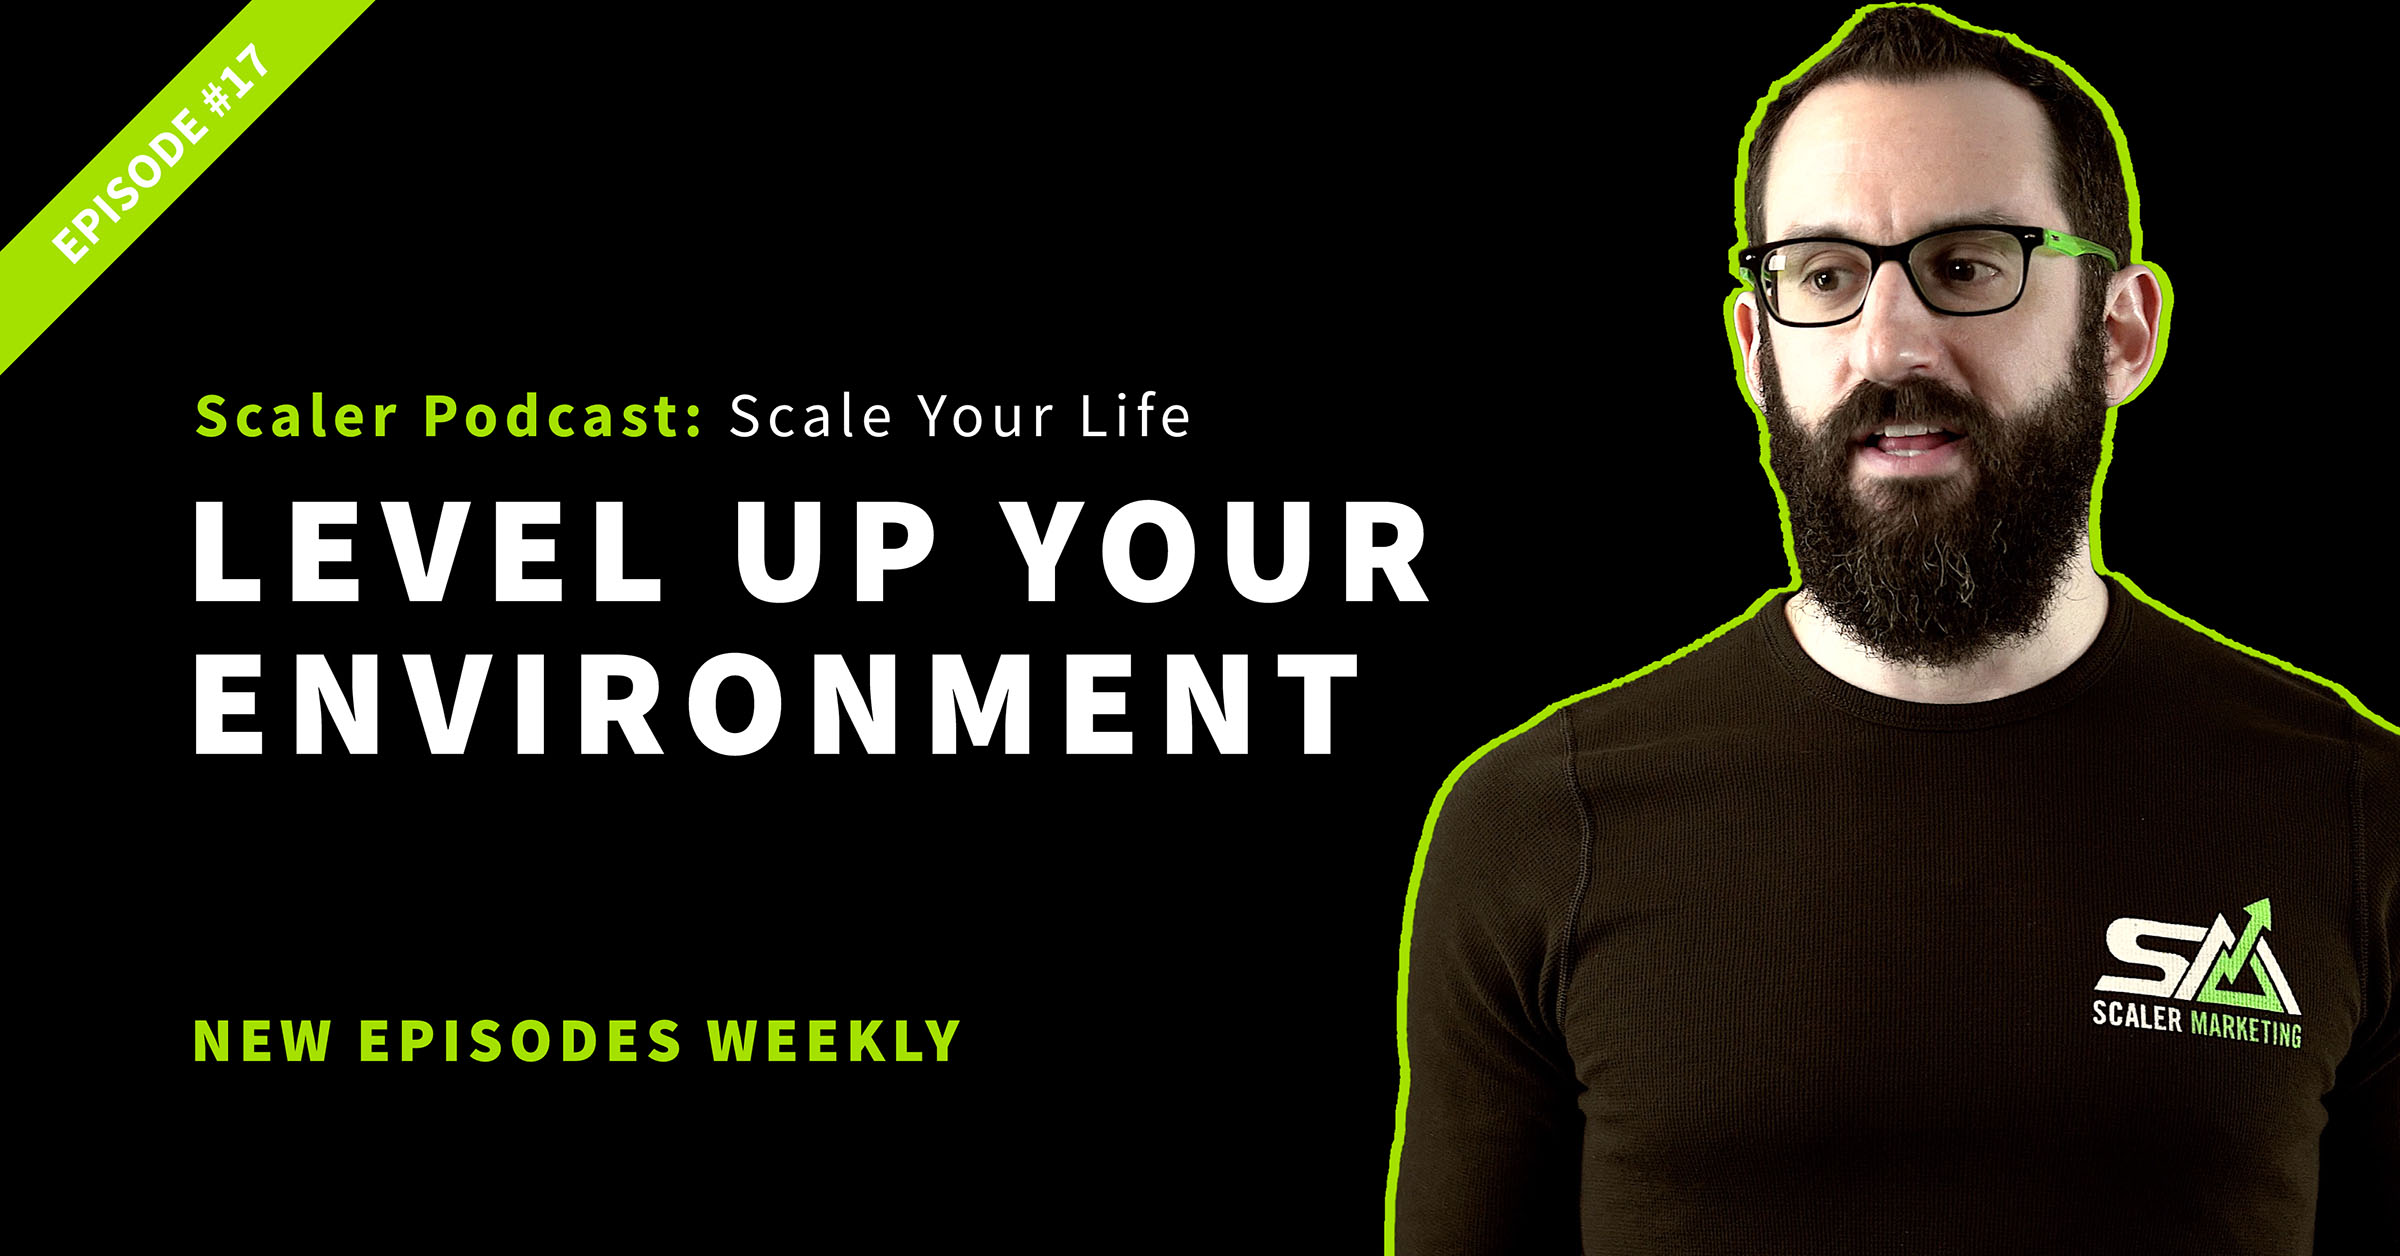 Episode 17 - Level Up Your Environment